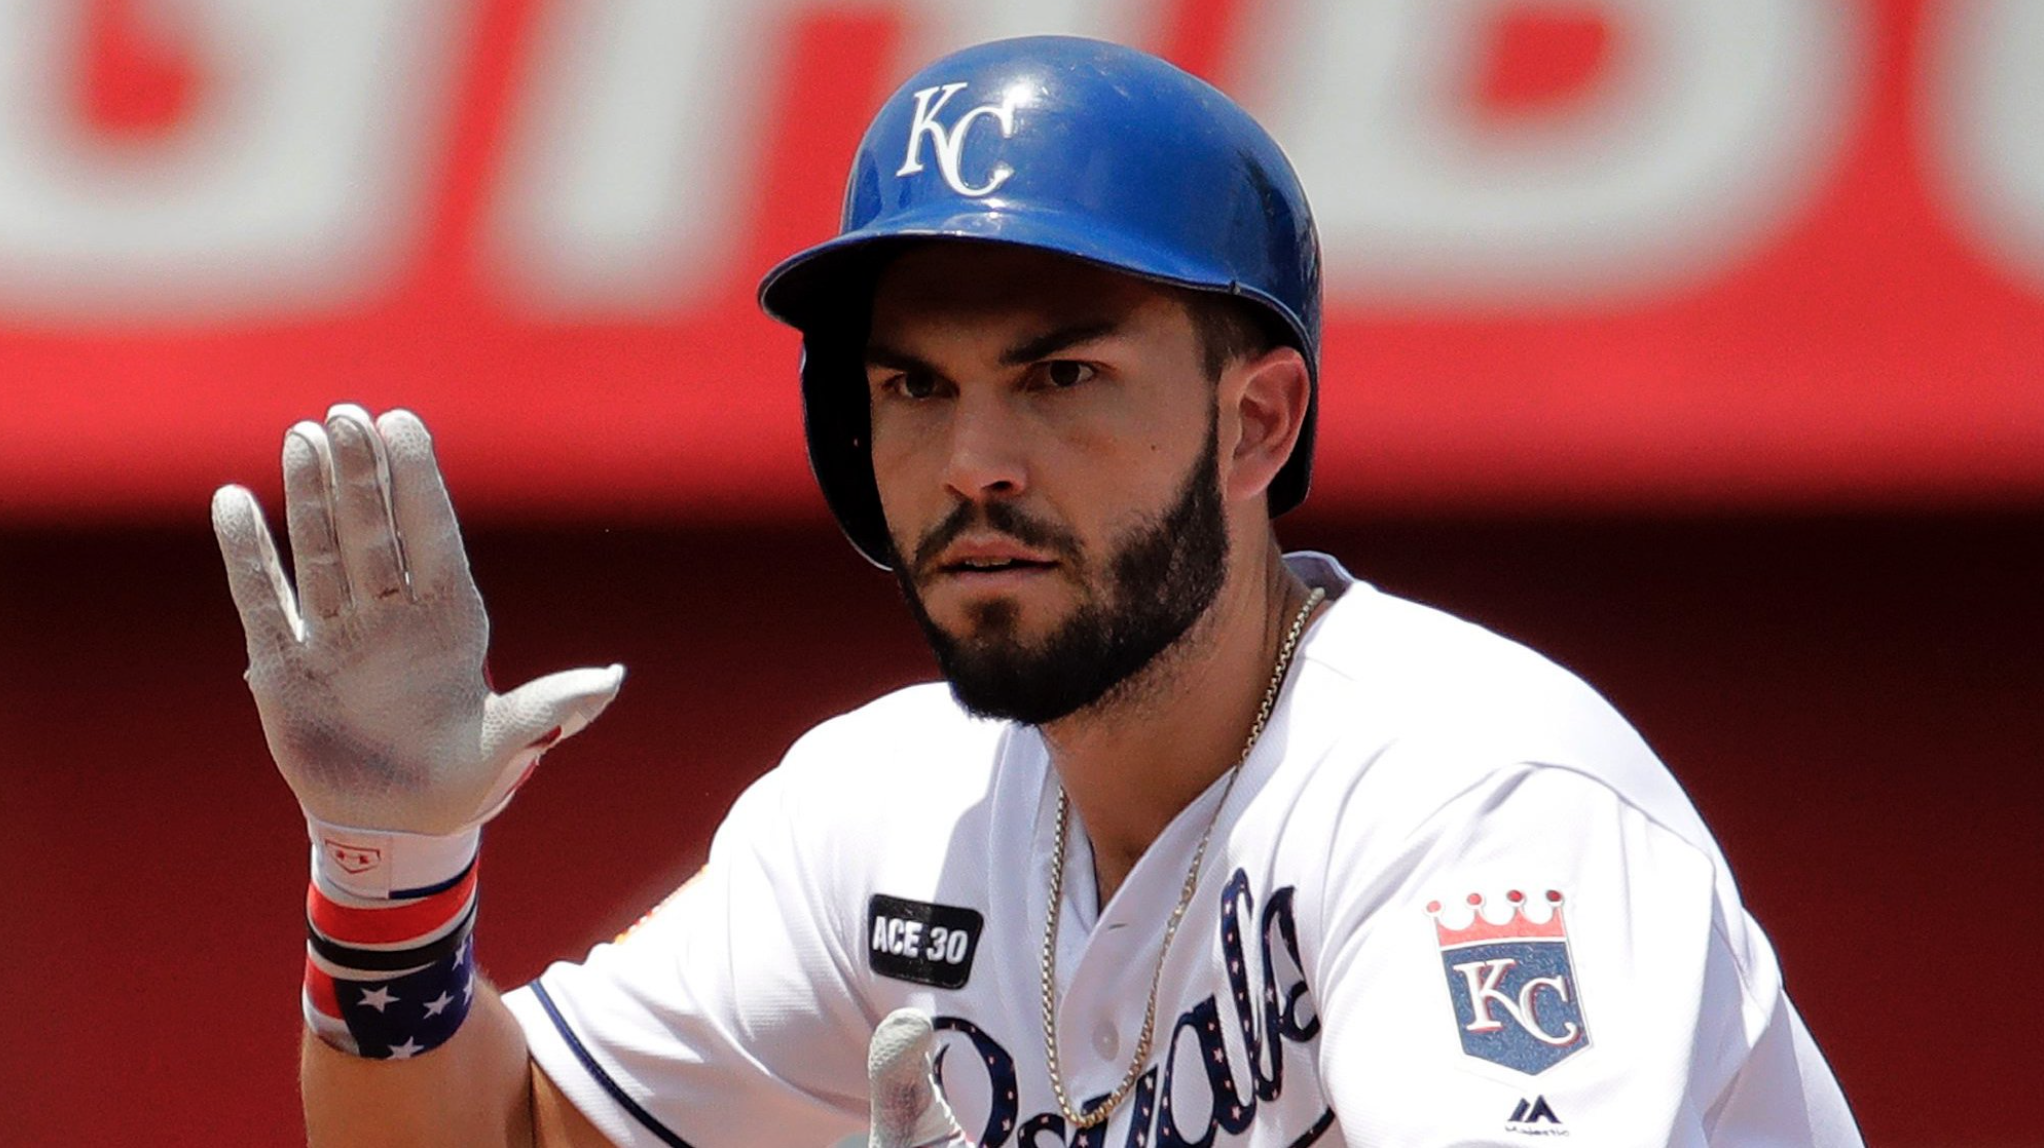 Padres Sign Eric Hosmer Calisports News